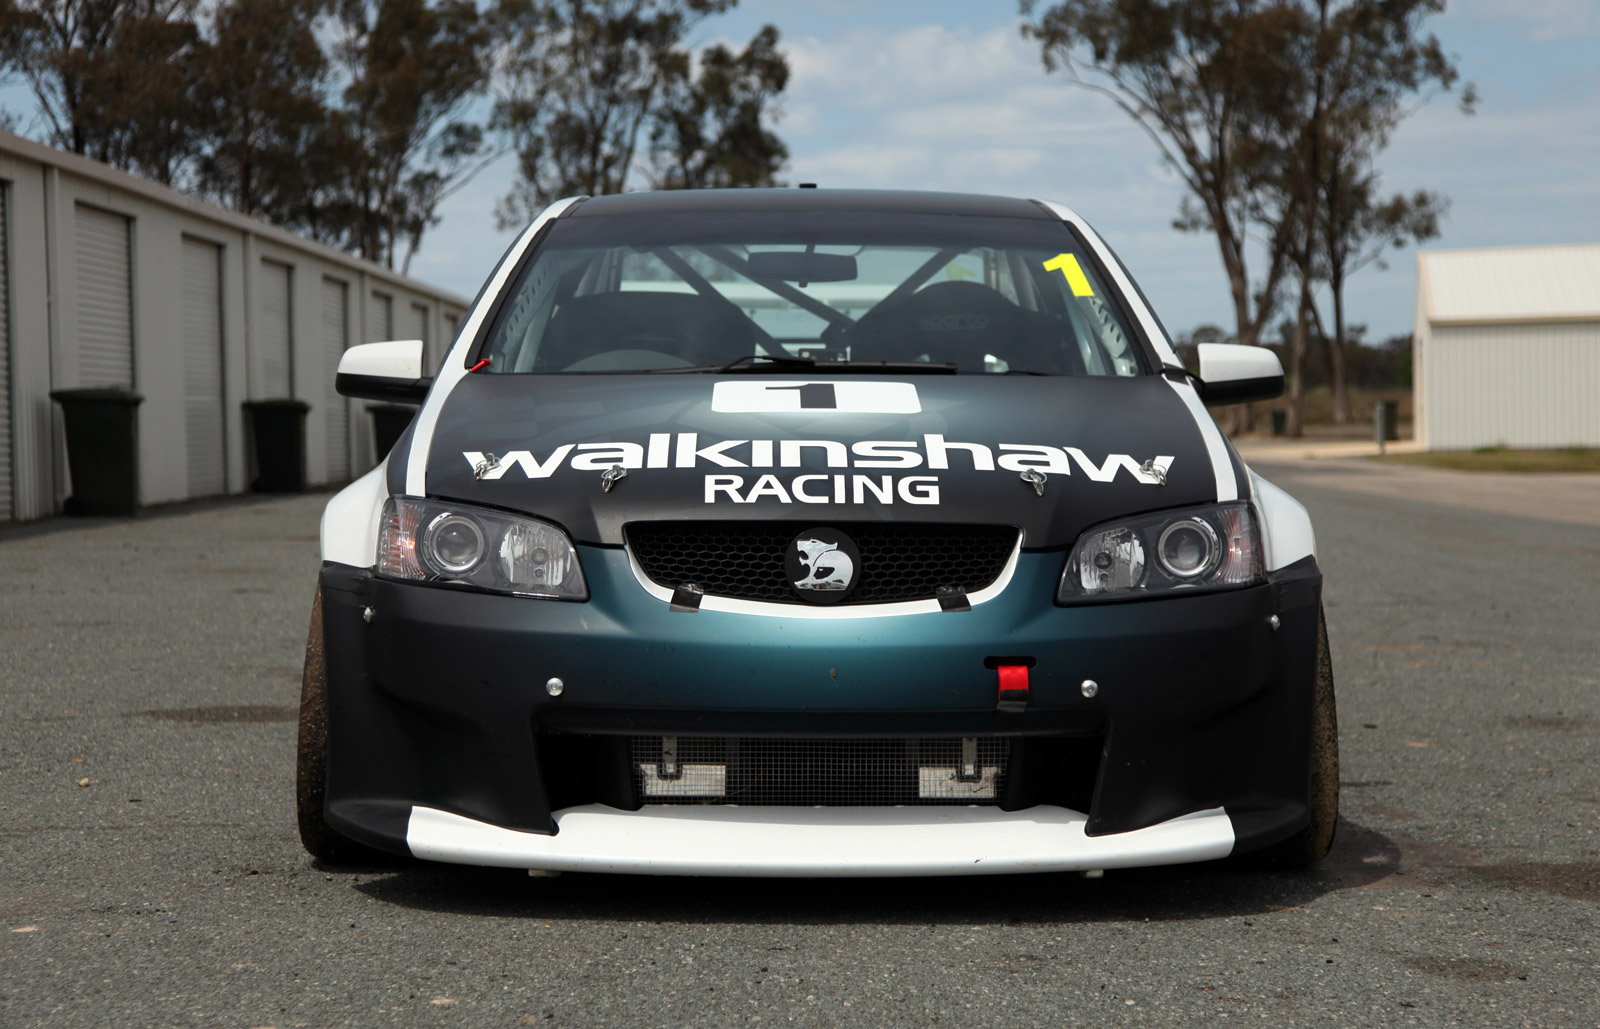 Wrx Sti Race >> HSV Reveals Details About Holden Commodore-Based One-Make Racing Series